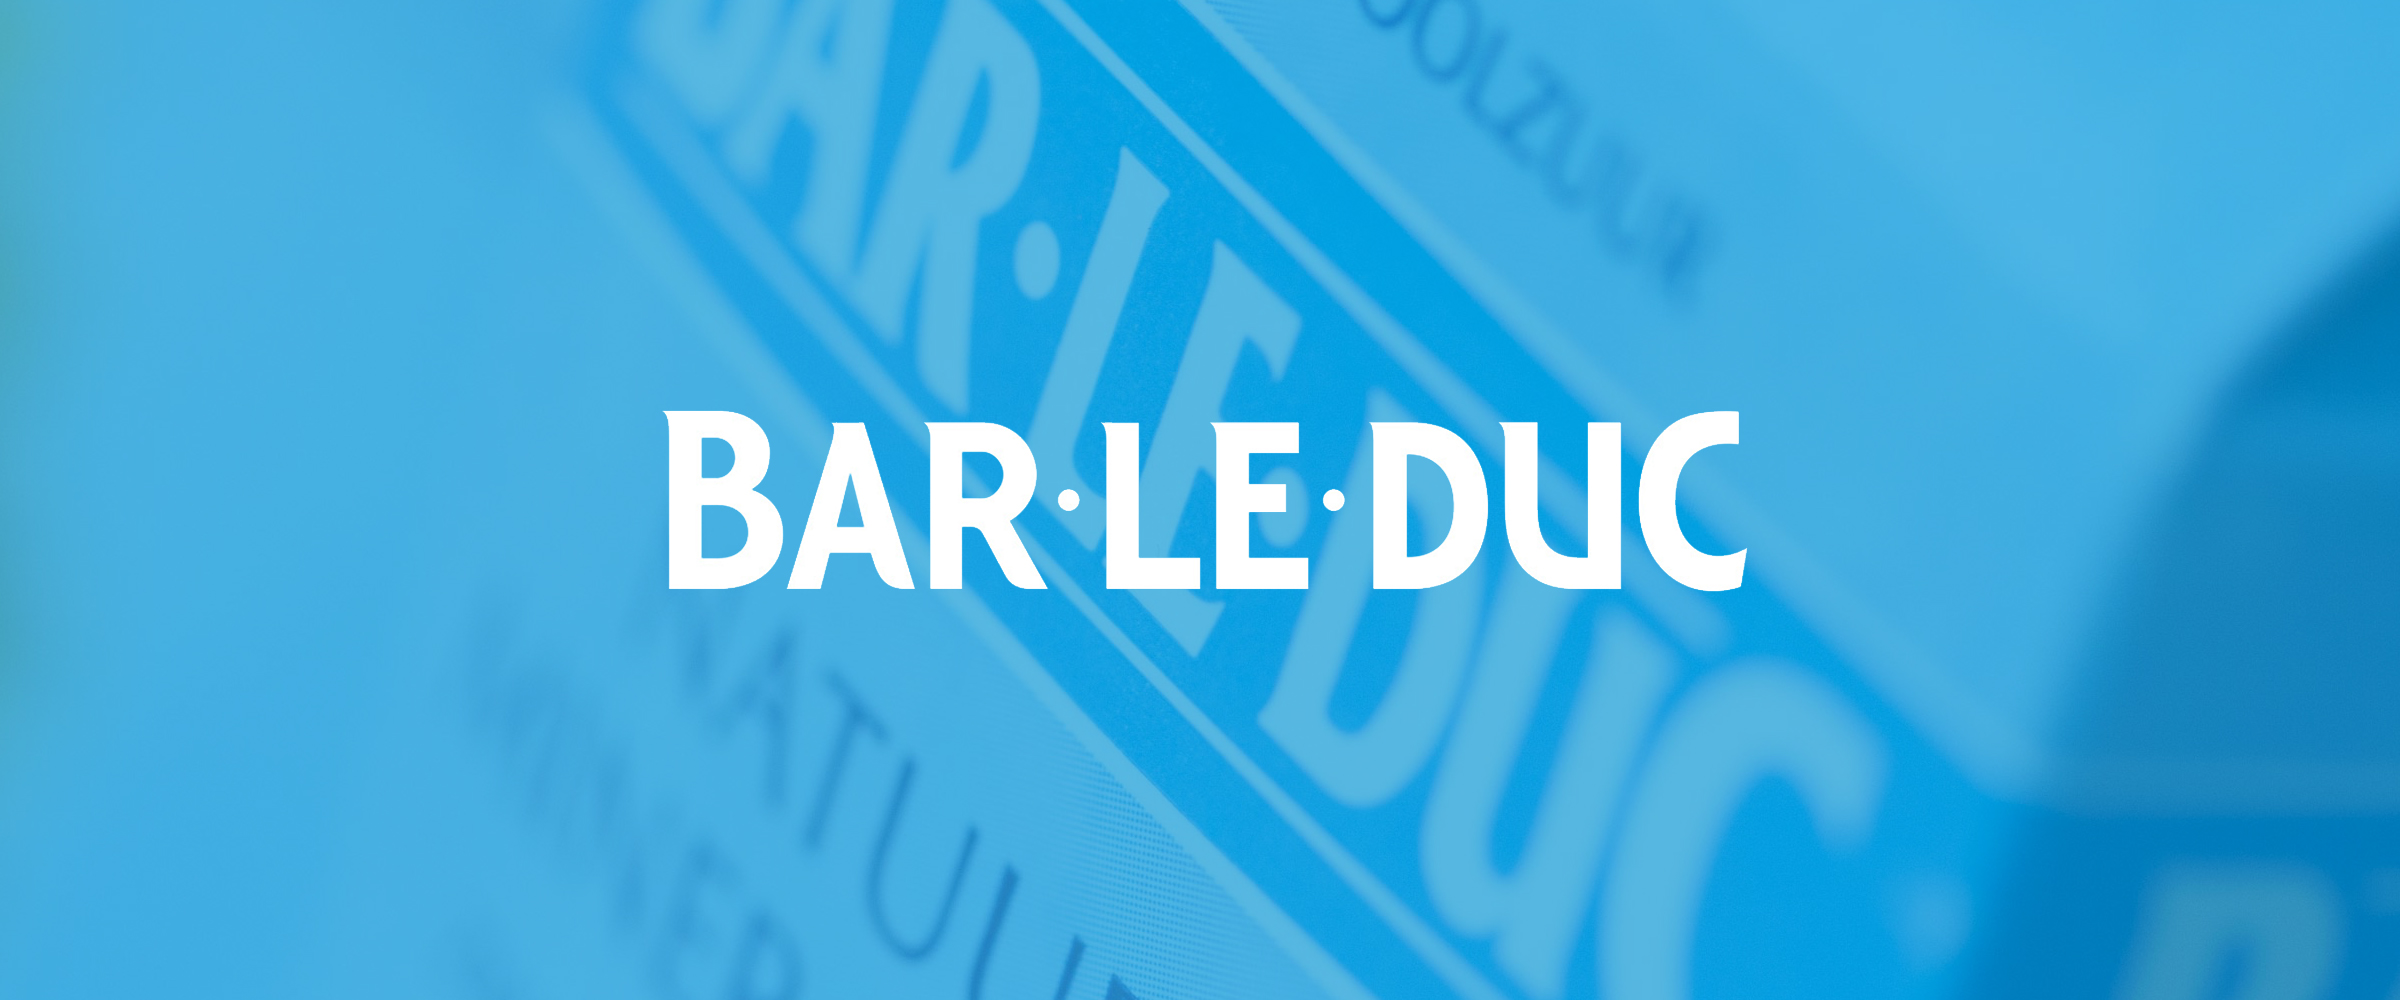 bar-le-duc_header1-copy